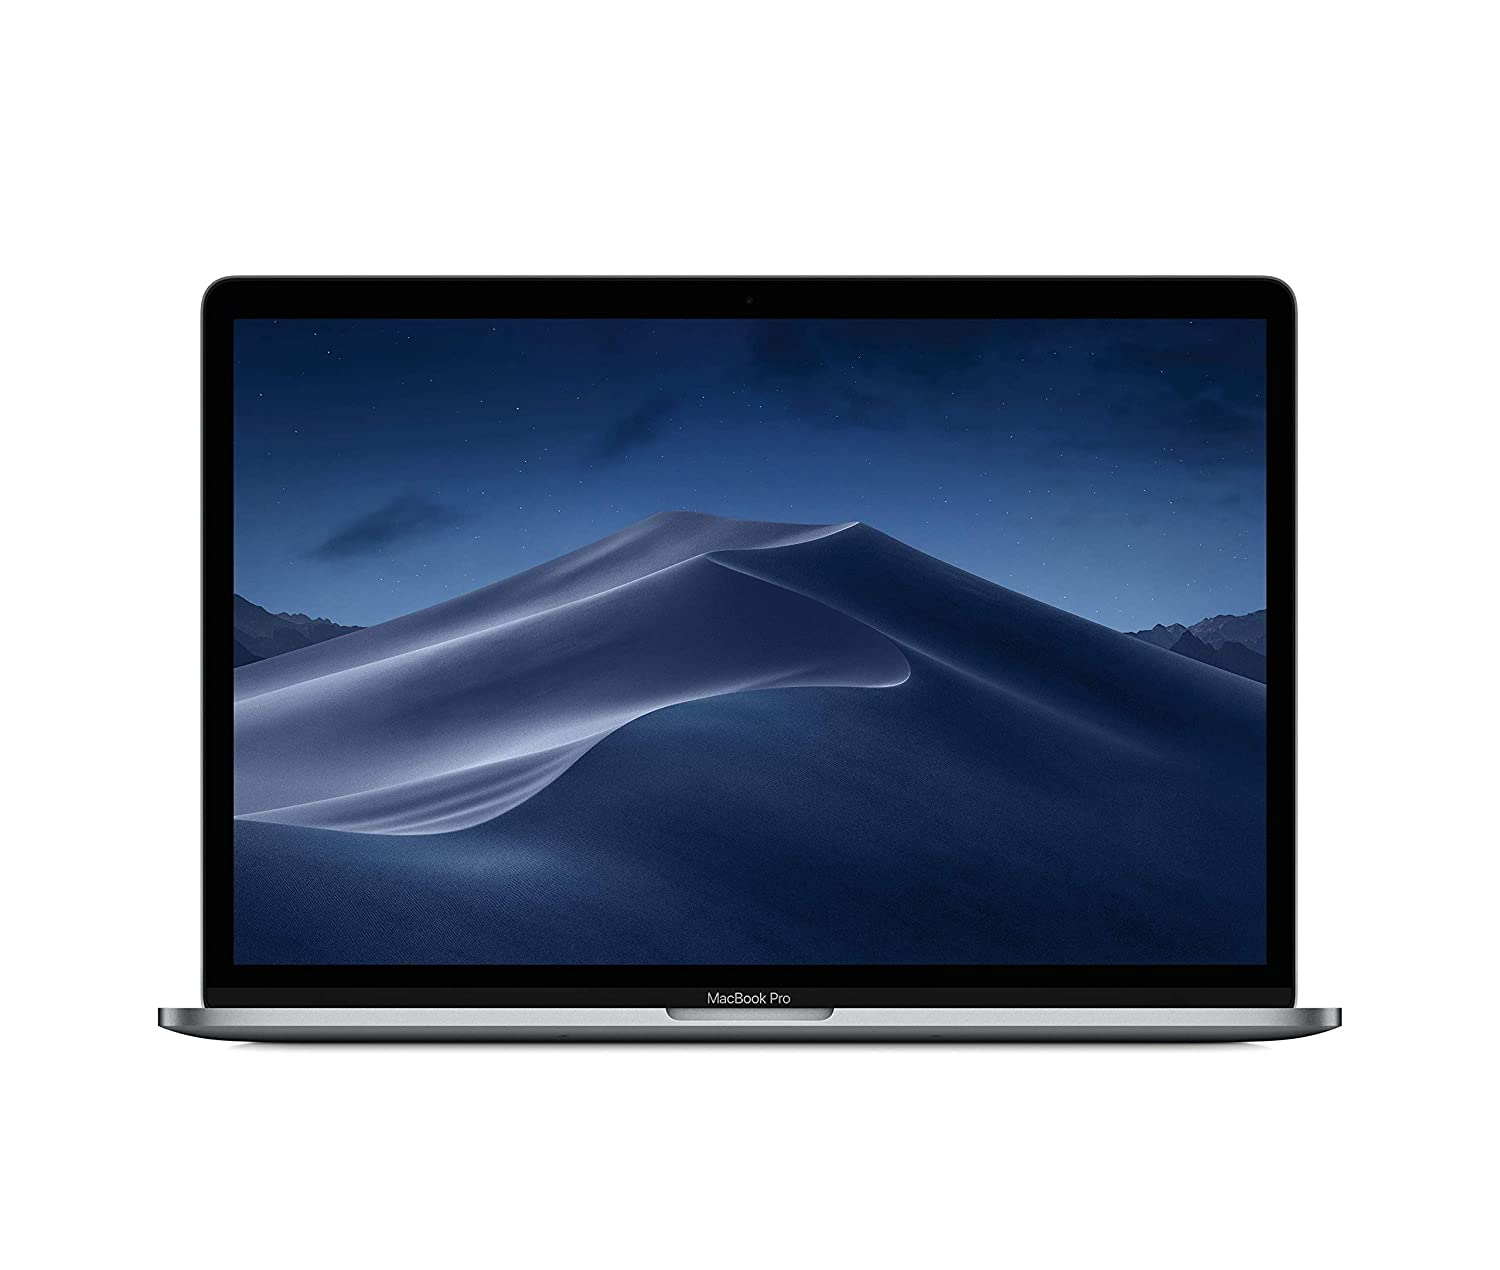 Apple MacBook Pro (15 Retina, Touch Bar, 2.2GHz 6-Core Intel Core i7, 16GB RAM, 256GB SSD) - Space Gray (Latest Model)